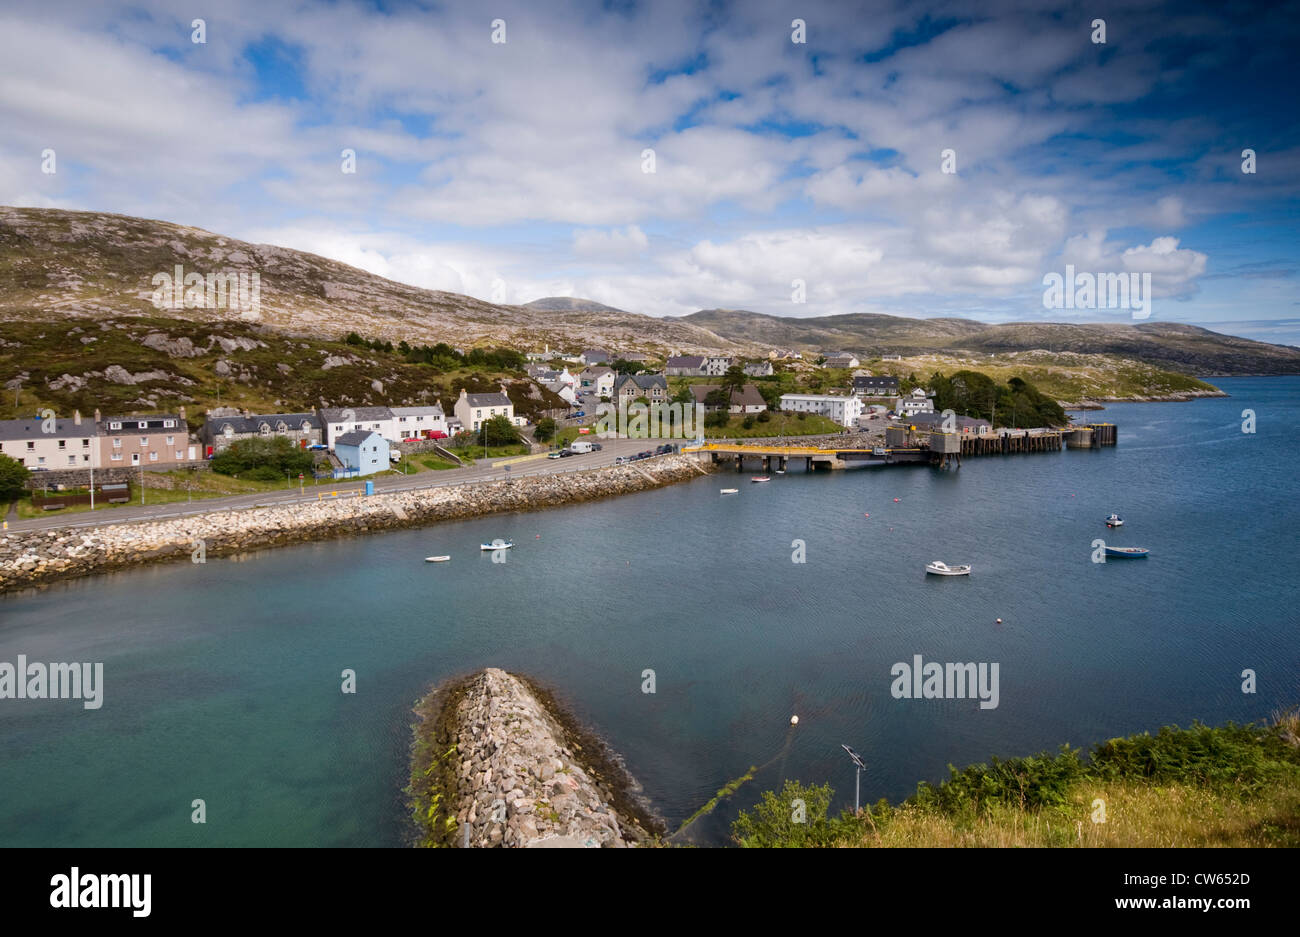 Tarbert on the Isle of Harris in the Outer Hebrides, viewed from the hills surrounding the port - Stock Image